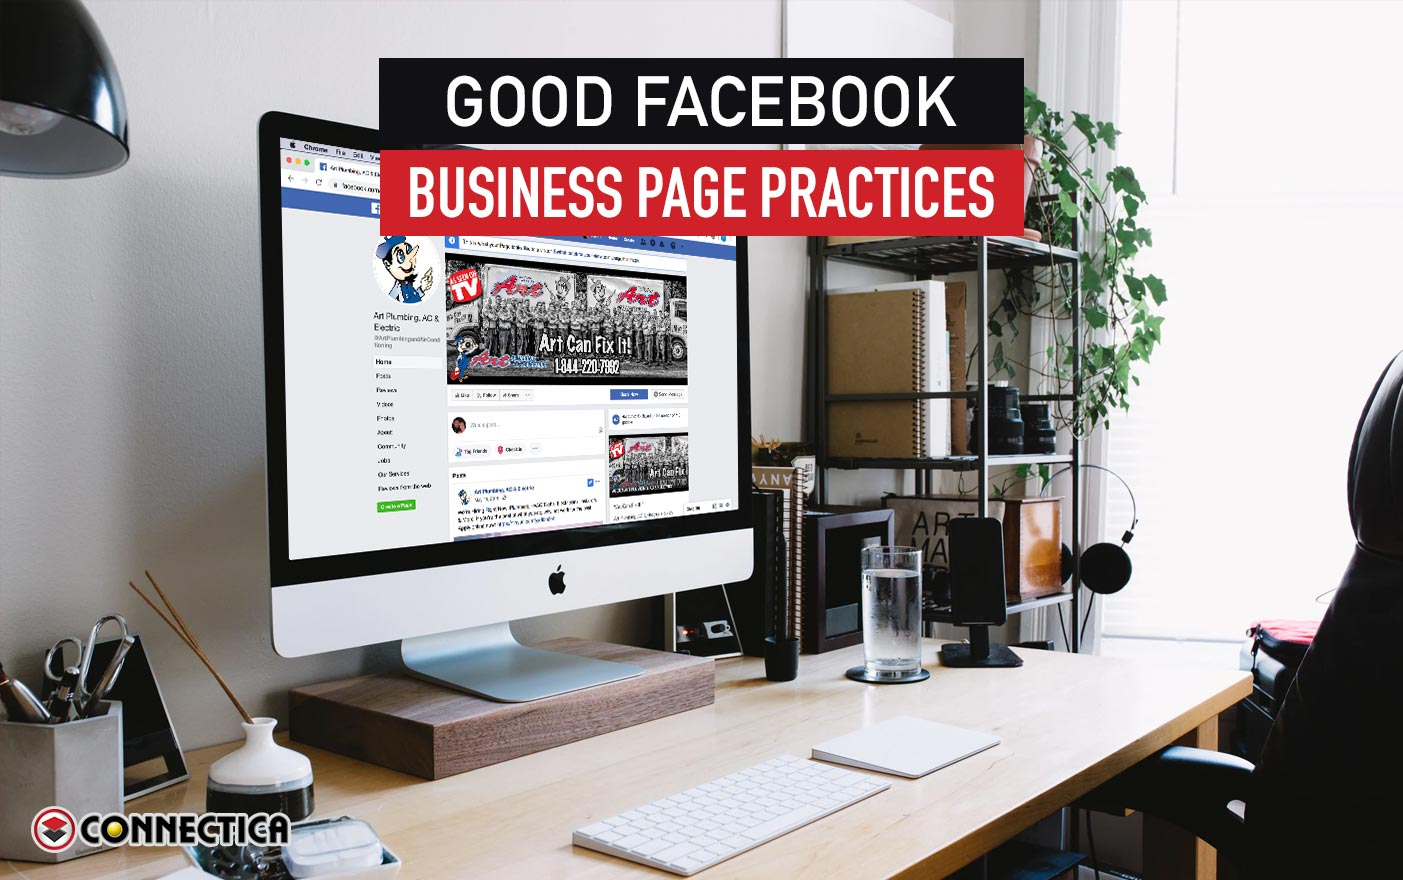 Facebook Business Page Practices